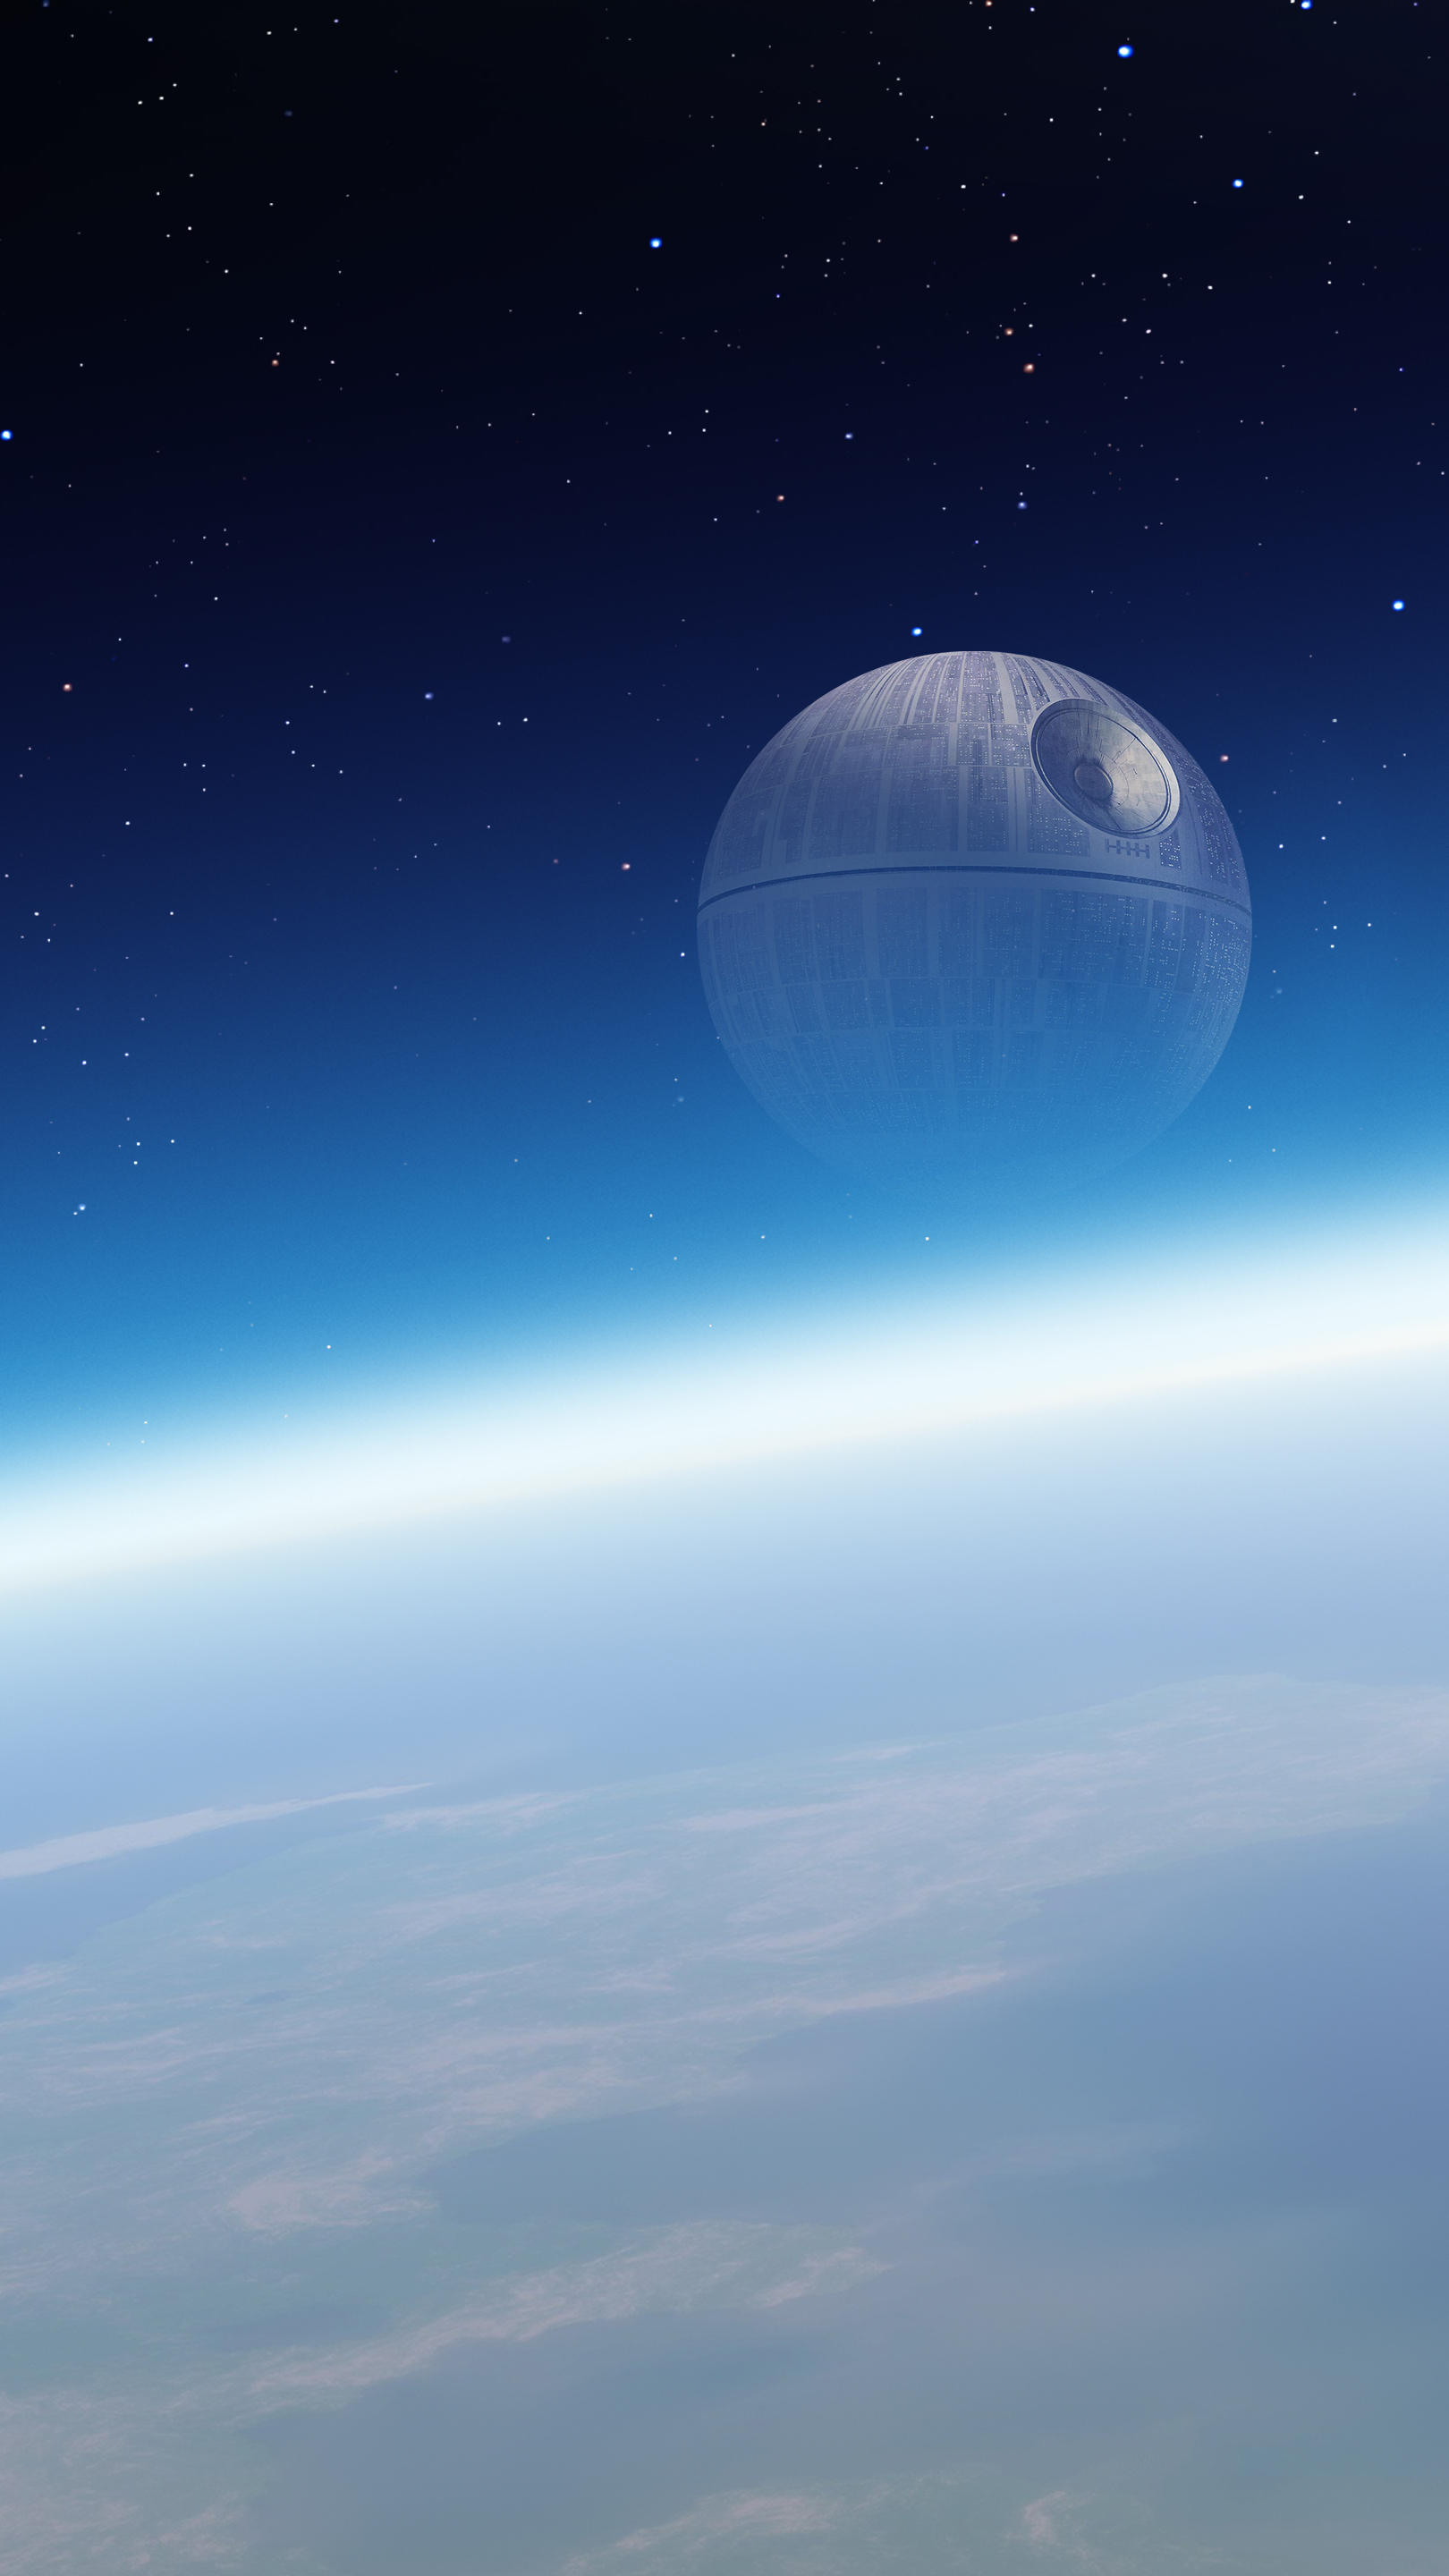 Ross Kimes Apple Death Star Wallpaper